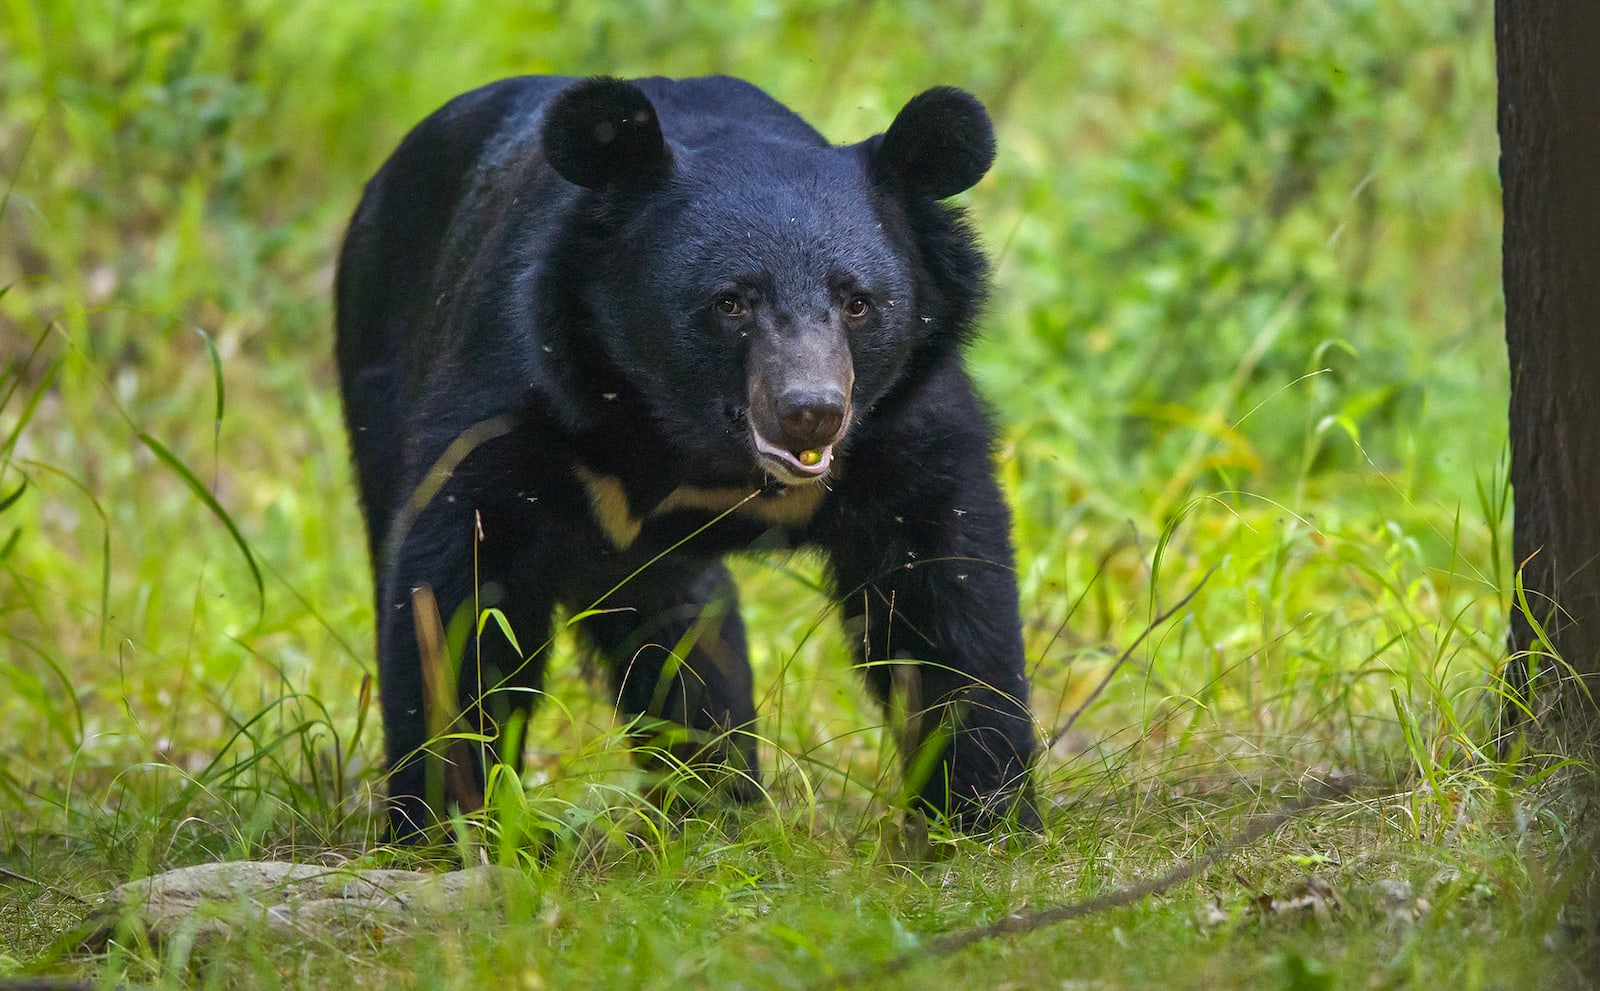 """Asiatic black bears are opportunistic feeders and consume fruits, berries, roots, nuts, honey, and small invertebrates, depending on the time of year. """"Ursus thibetanus is placed under carnivore but except [the] polar bear, most bears are opportunistic omnivores,"""" write authors Vijay Kumar Yadav, DS Chauhan, and PC Lakhera in a research paper on the bears in Nanda Devi Biosphere, Uttarakhand. They mainly feed """"on fleshy plant material rich in energy, insects, fish, and mammals etc."""" they say."""